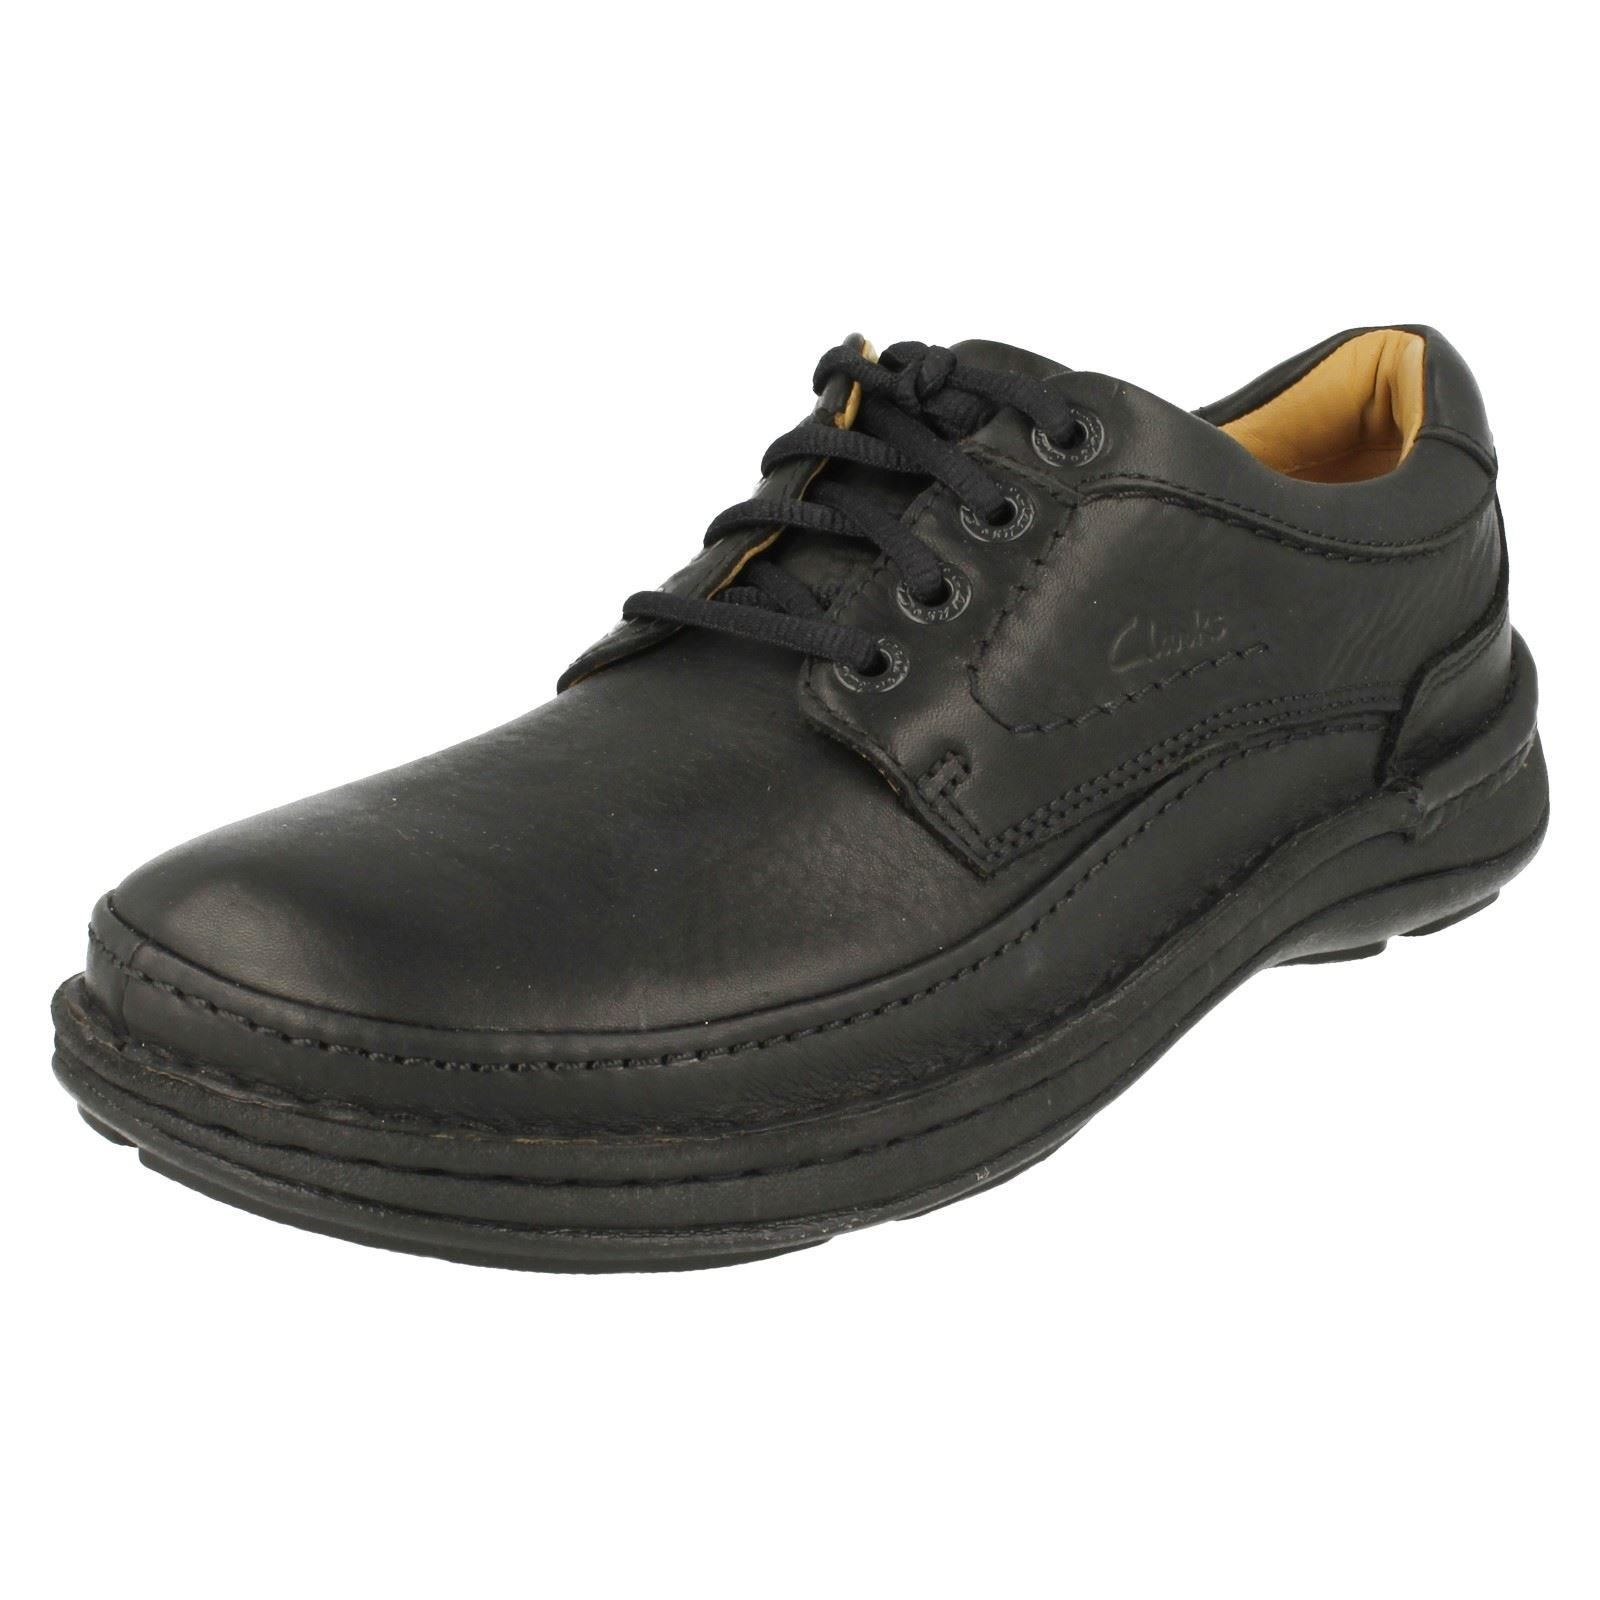 Clarks Active Air Shoes Reviews